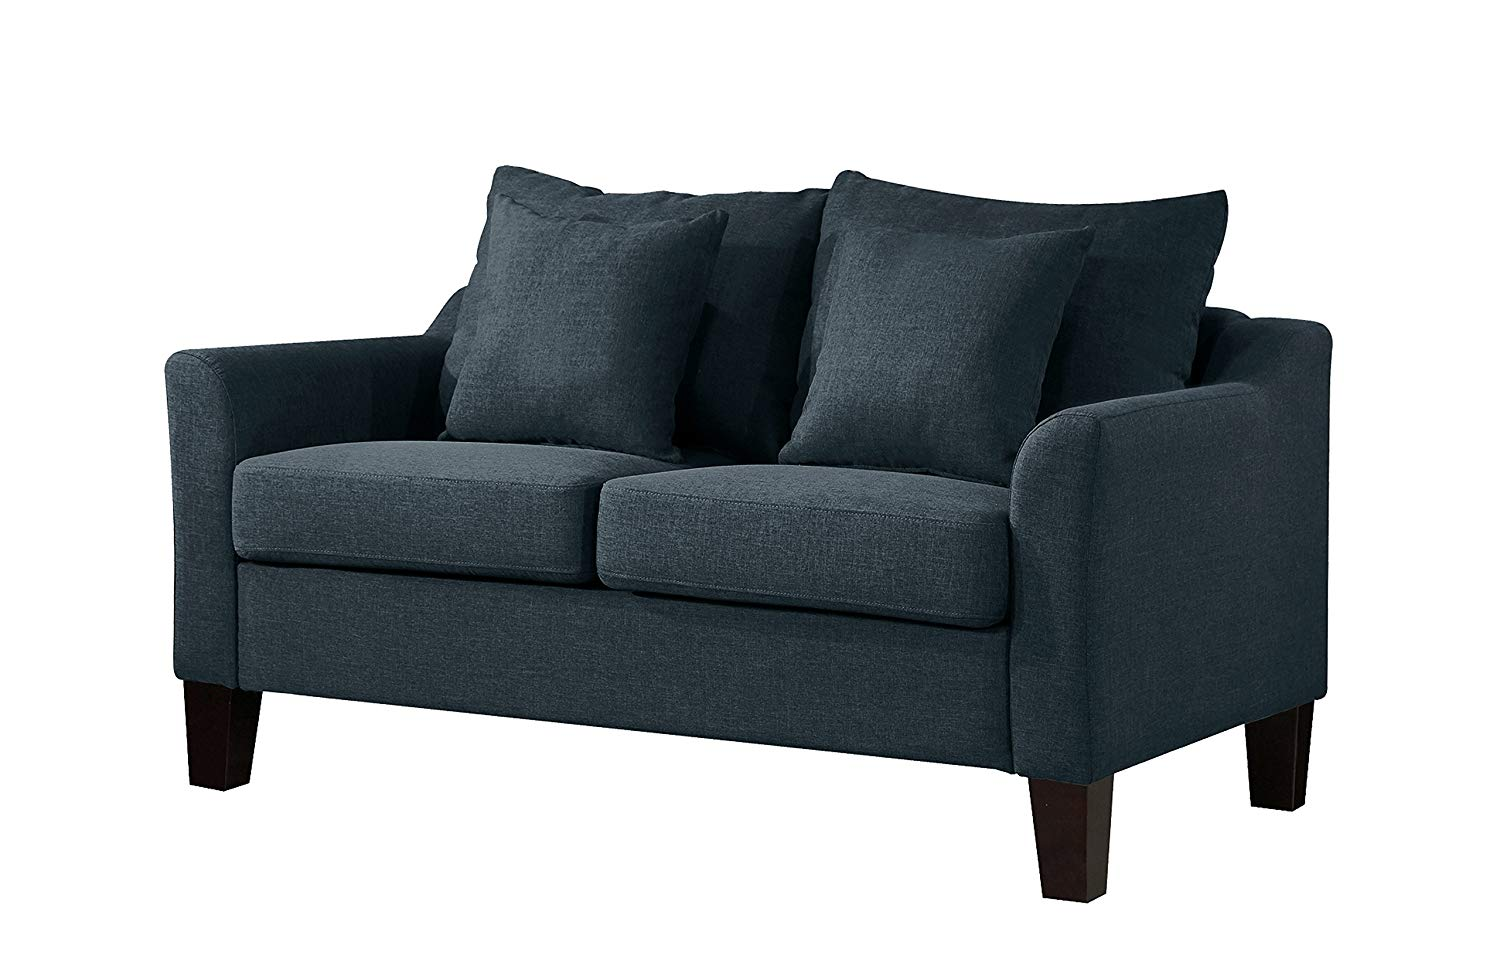 Container Furniture Direct S5322-L Michael Linen Upholstered Mid-Century Modern Loveseat, Blue